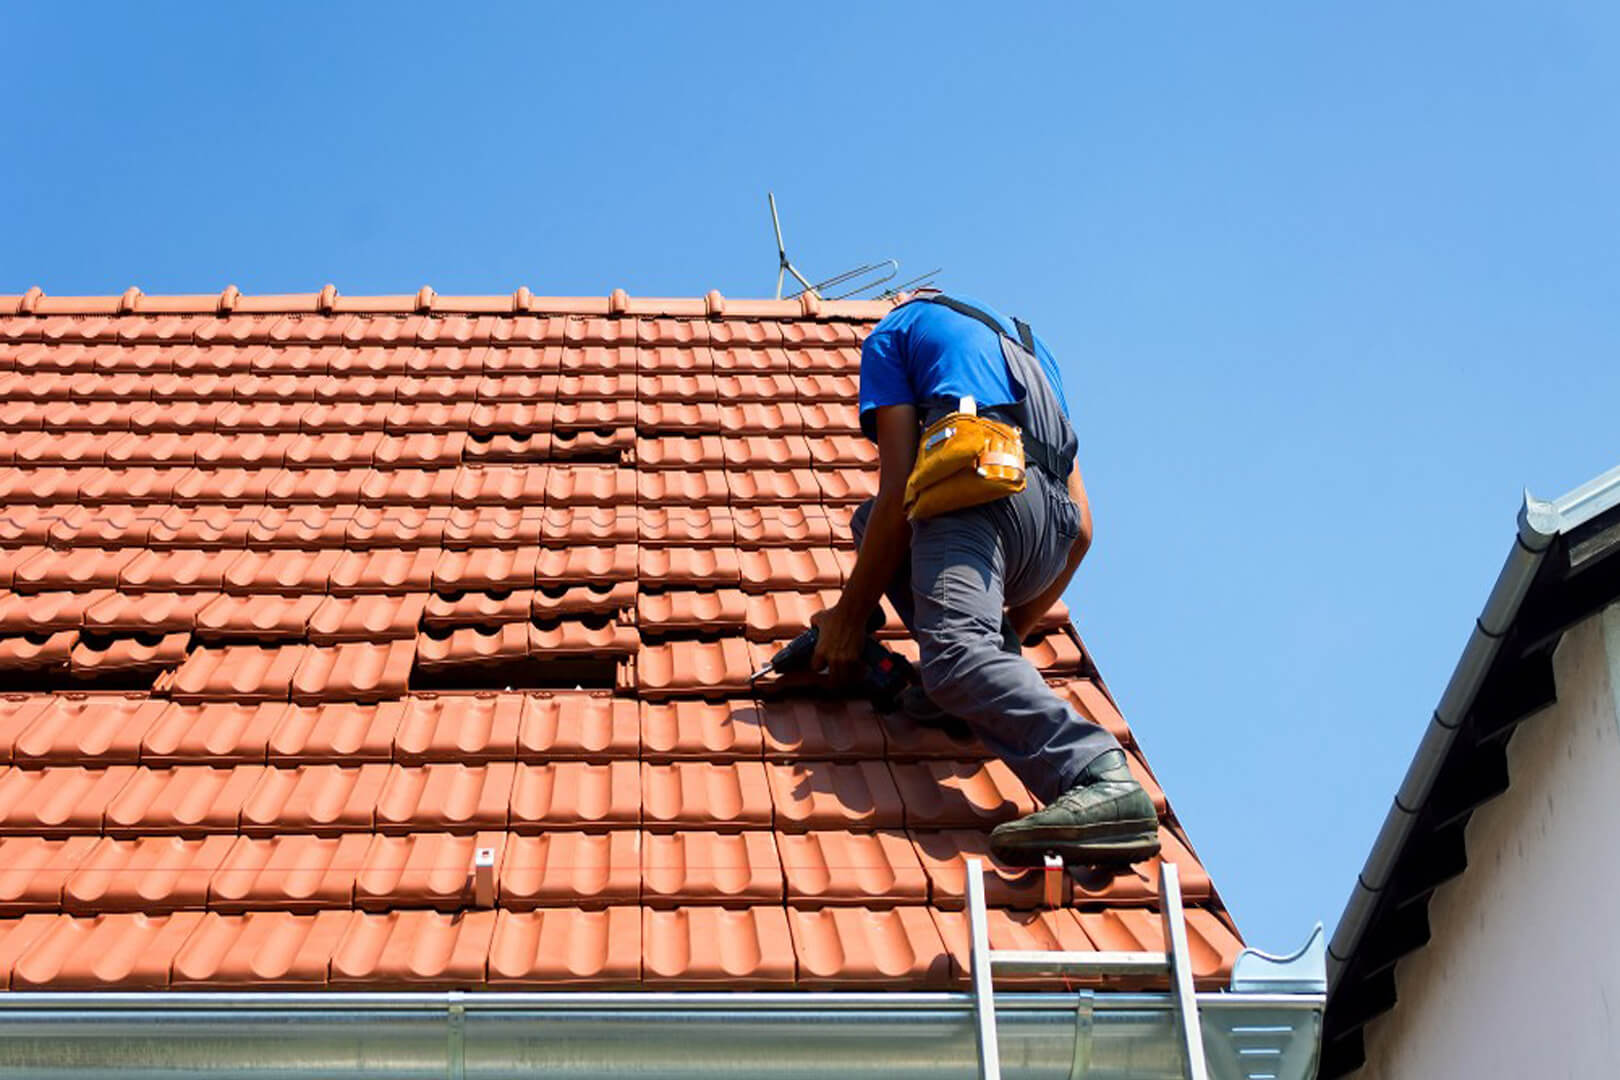 Relook at norms for working at heights